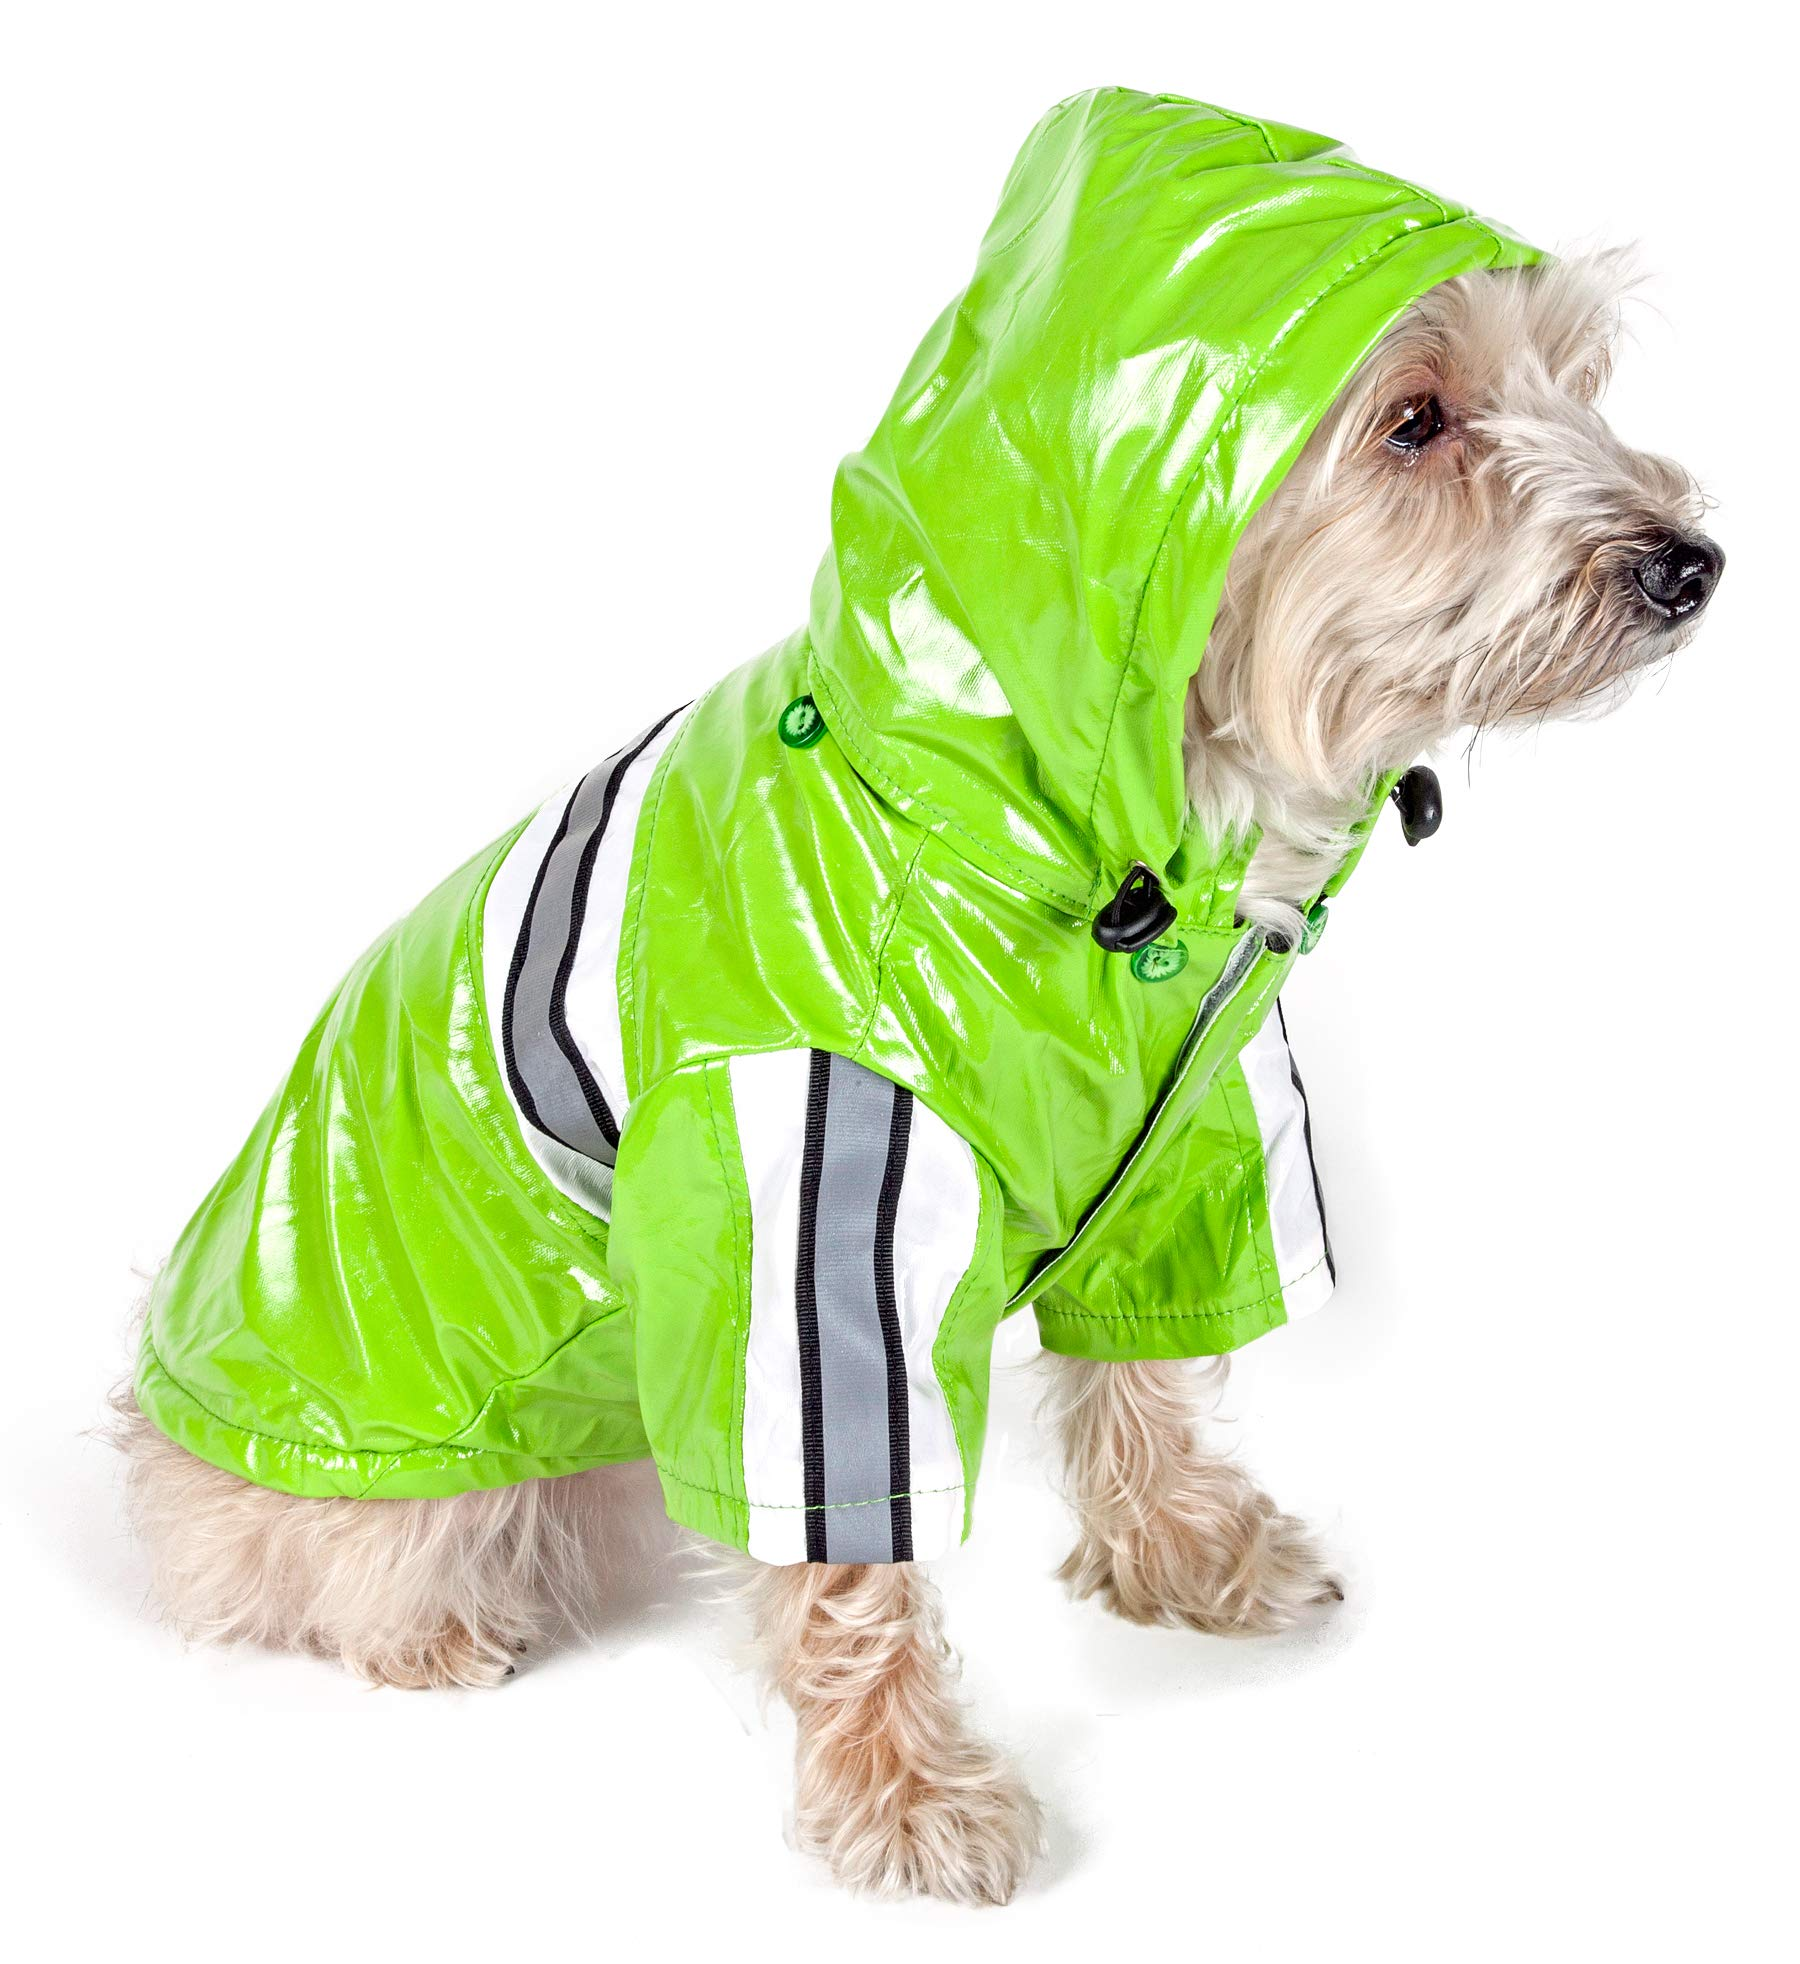 PET LIFE 'Reflecta-Glow' PVC Waterproof Fashion Insulated Adjustable and Reflective Pet Dog Coat Jacket Raincoat w/Removable Hood, Medium, Lime Green